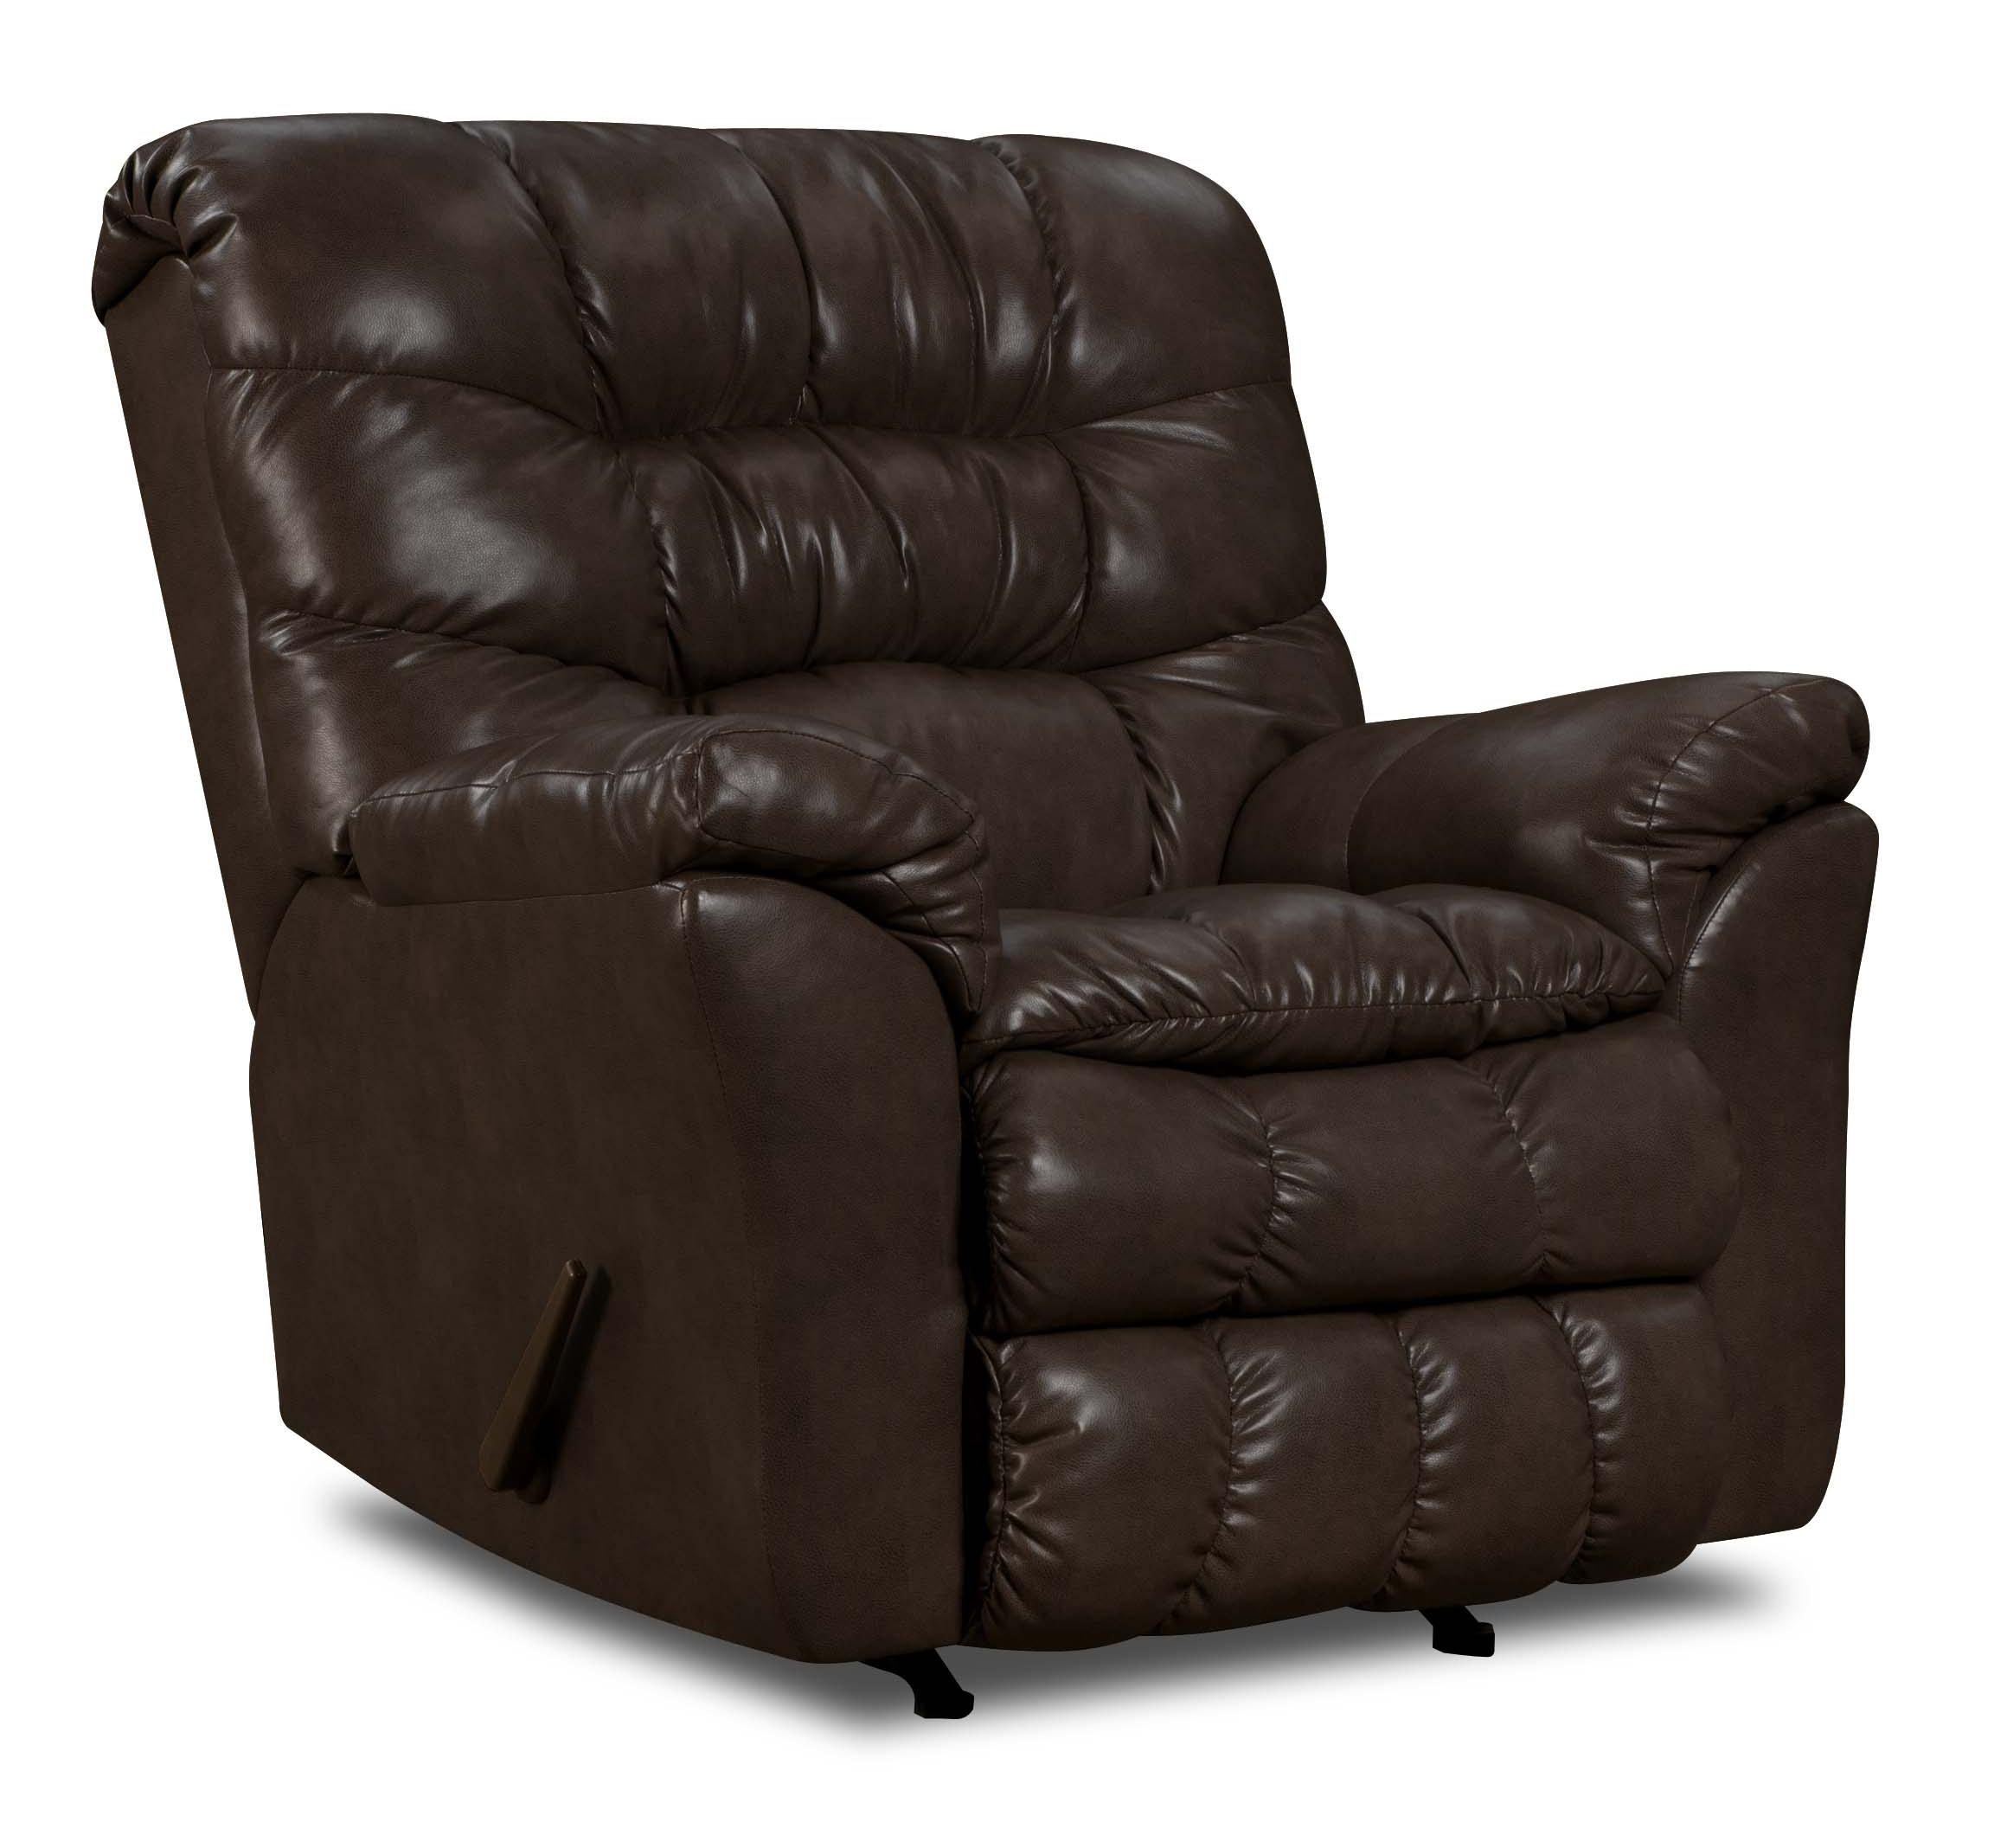 United Furniture Industries 689 Casual Power Rocker Recliner - Item Number: 689-P Rocker Vintage